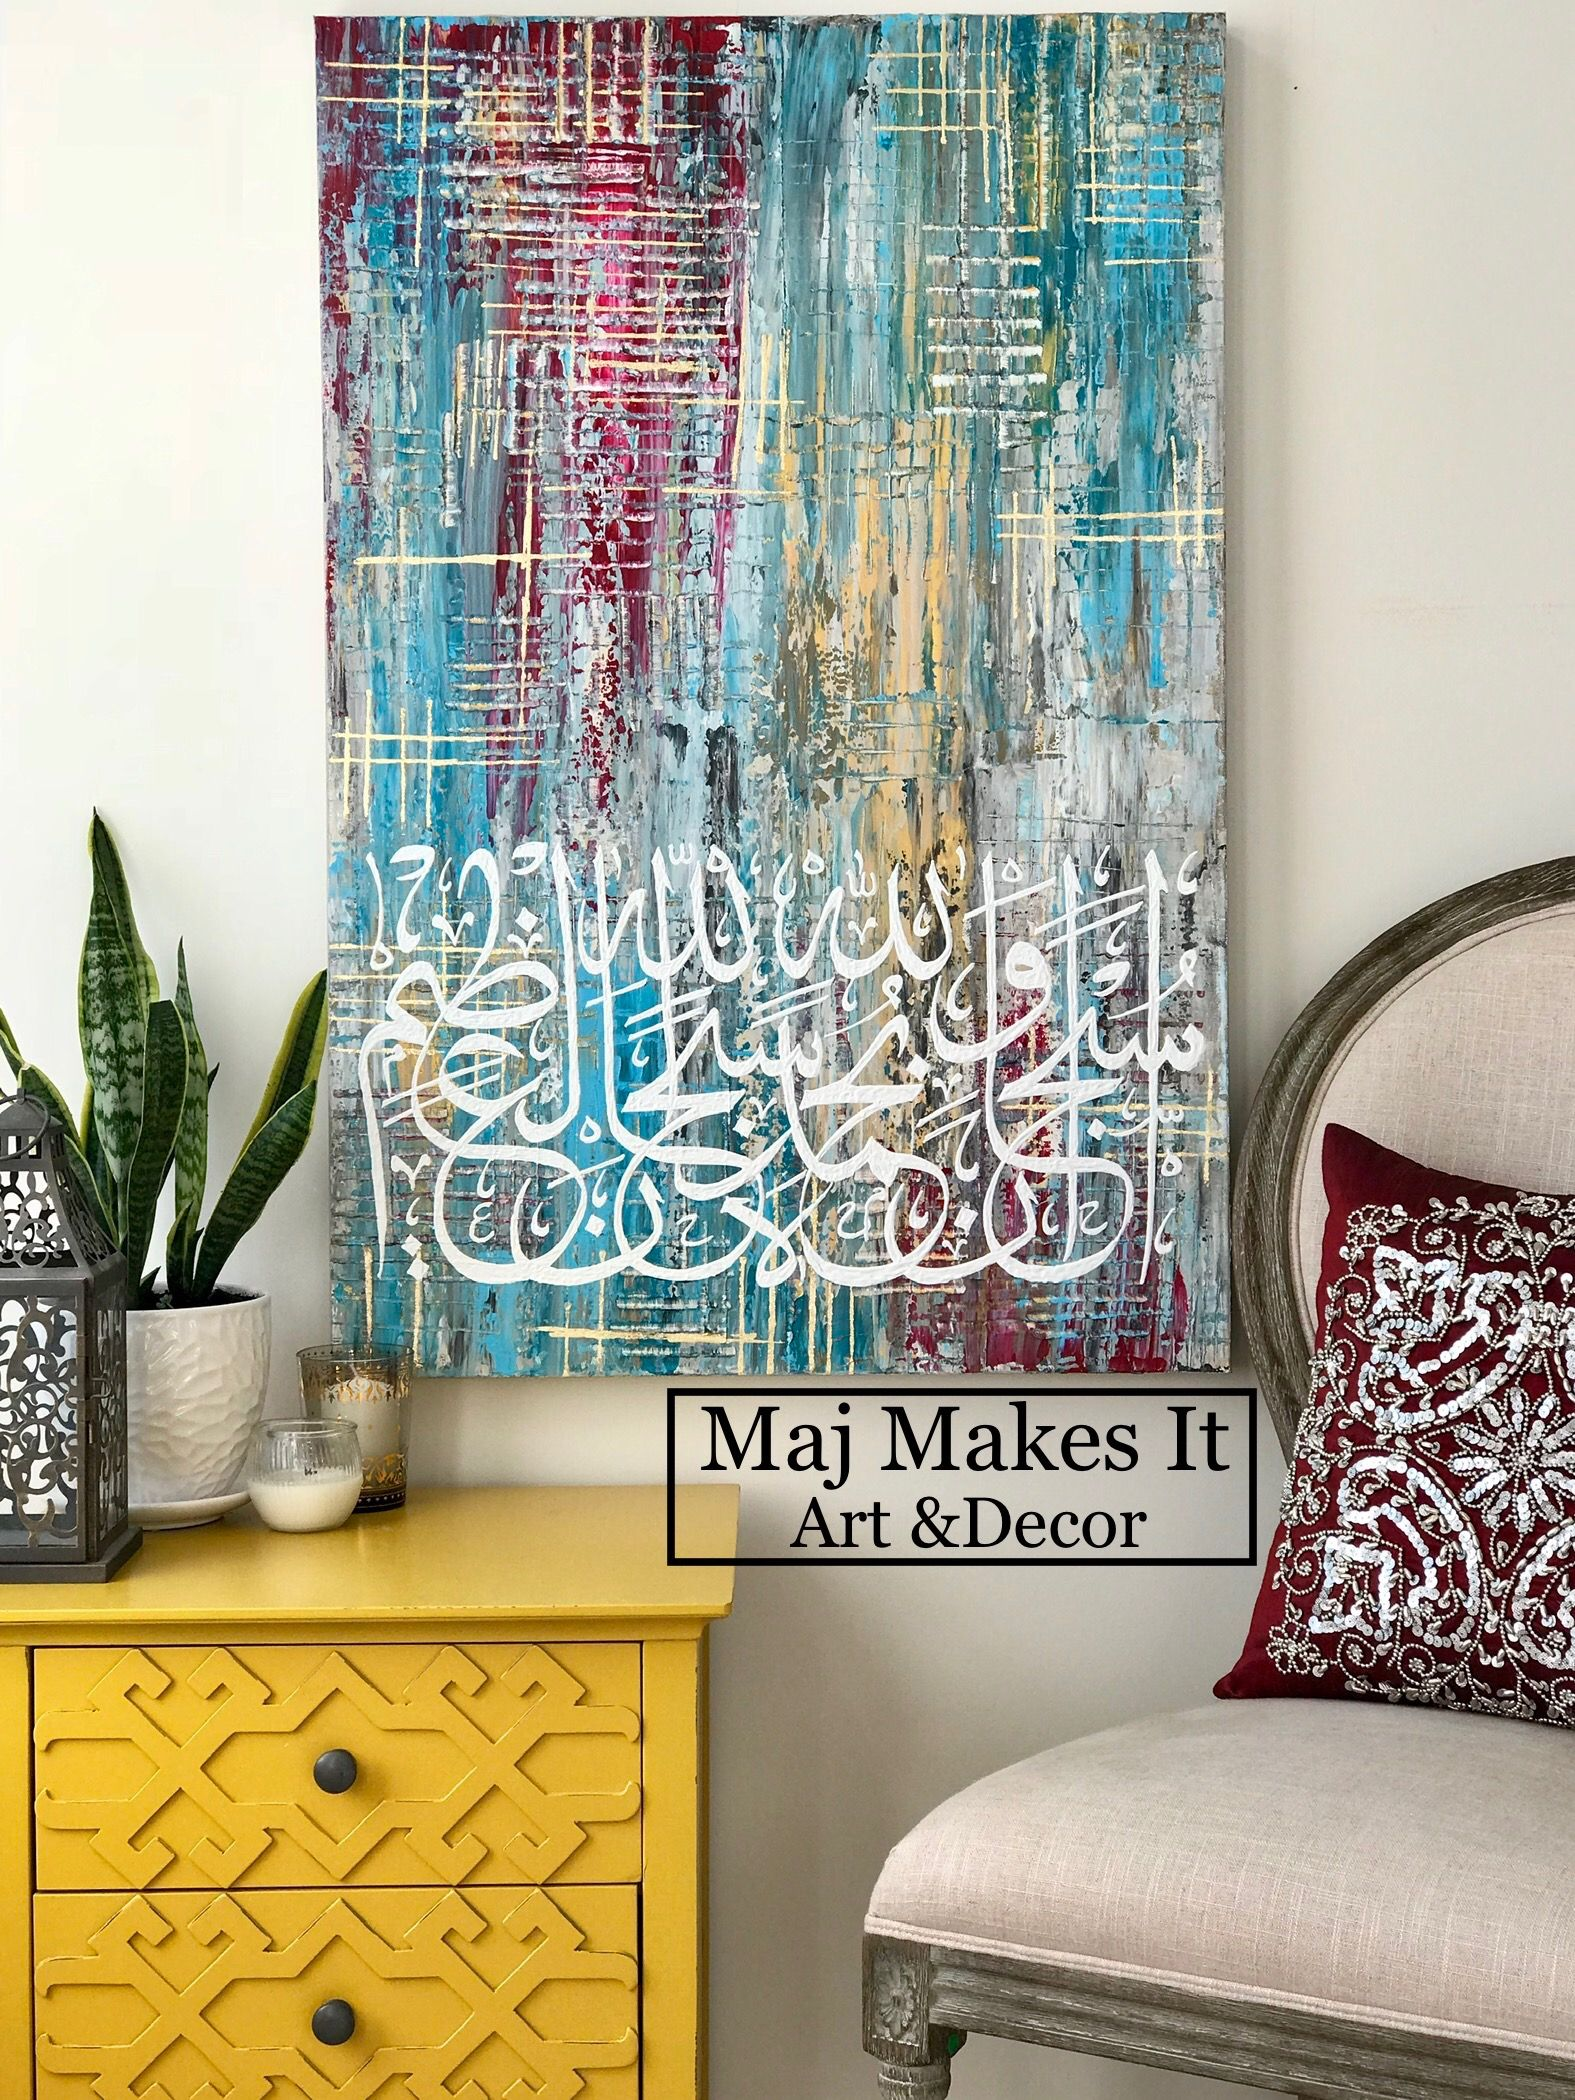 Islamic Art By Maj Makes It Islamic Calligraphy Painting Islamic Decor Islamic Wall Decor